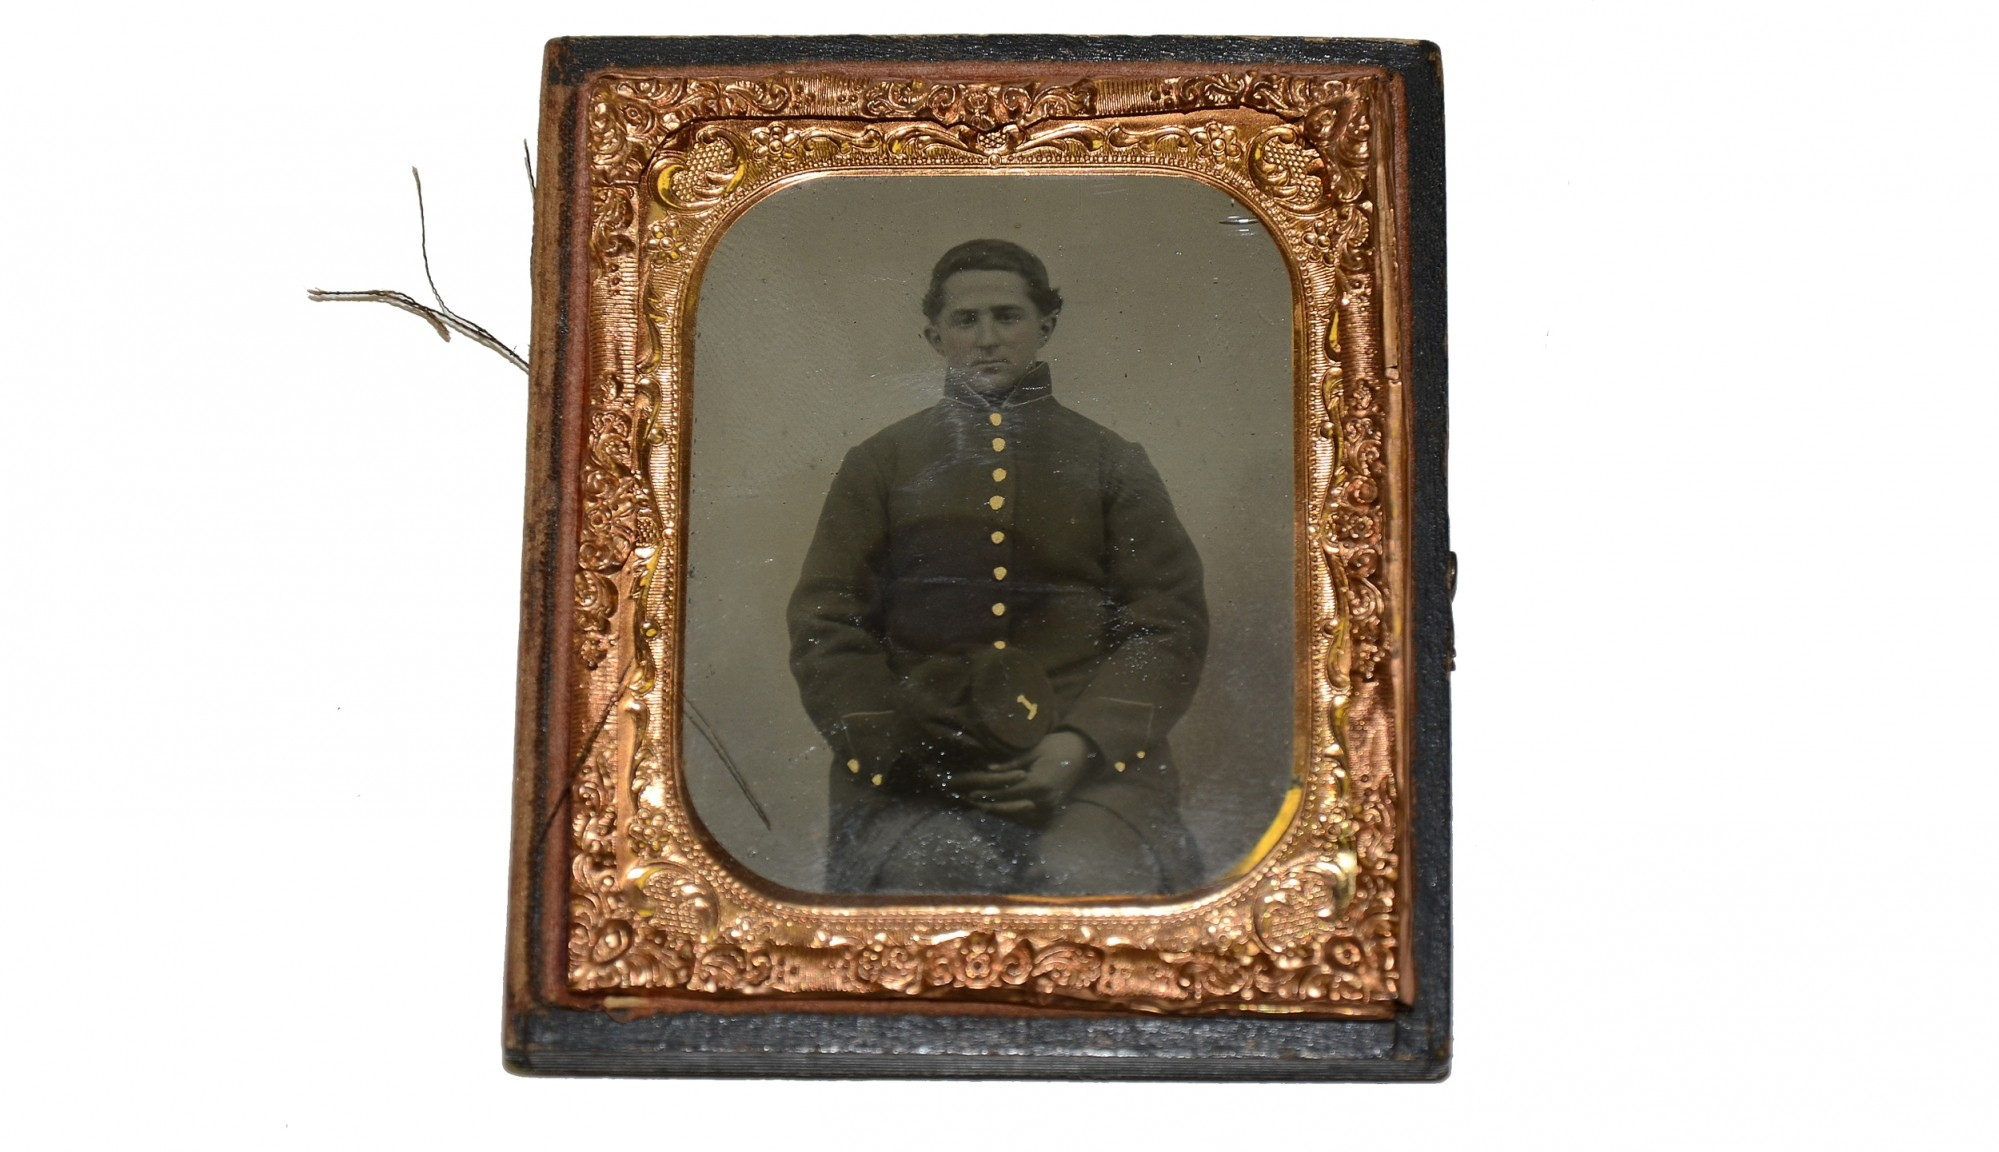 SIXTH PLATE TINTYPE OF 49TH PENNSYLVANIA SOLDIER